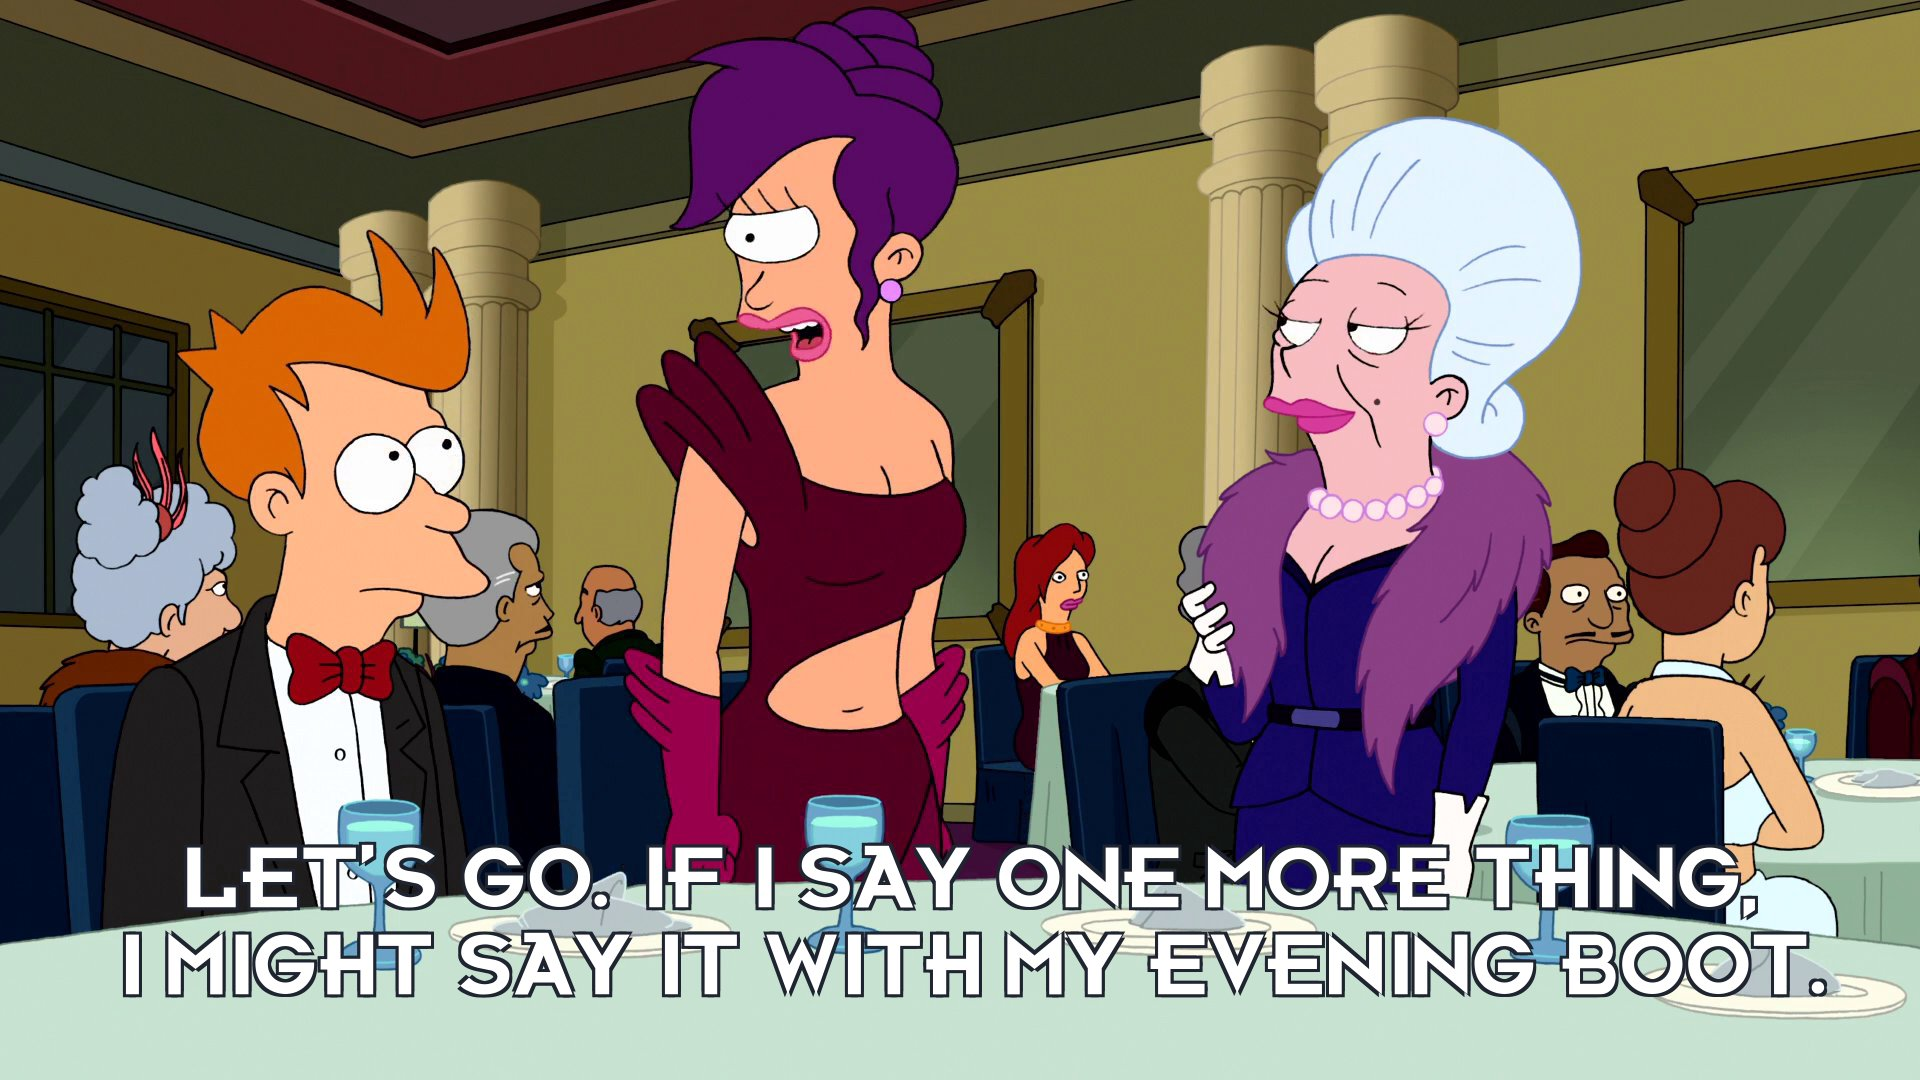 Turanga Leela: Let's go. If I say one more thing, I might say it with my evening boot.